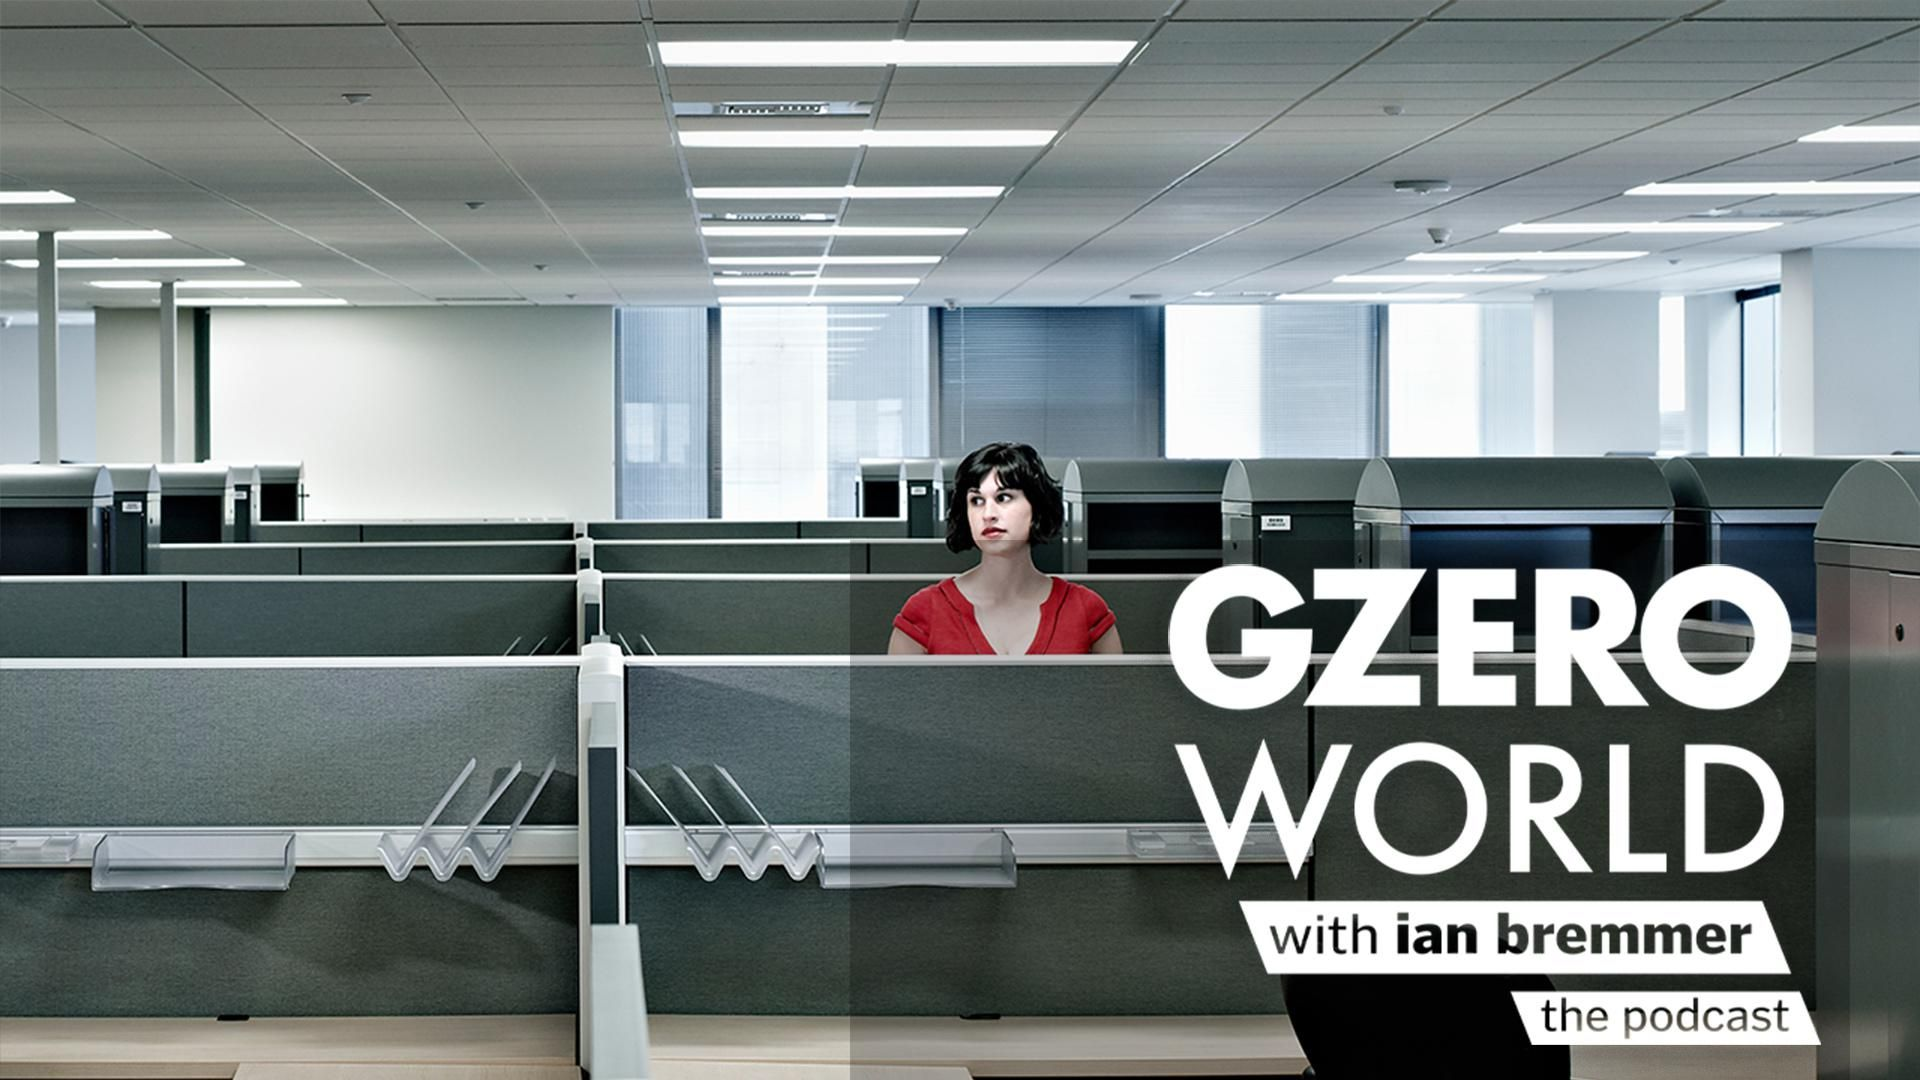 Podcast: Adam Grant reimagines work after COVID